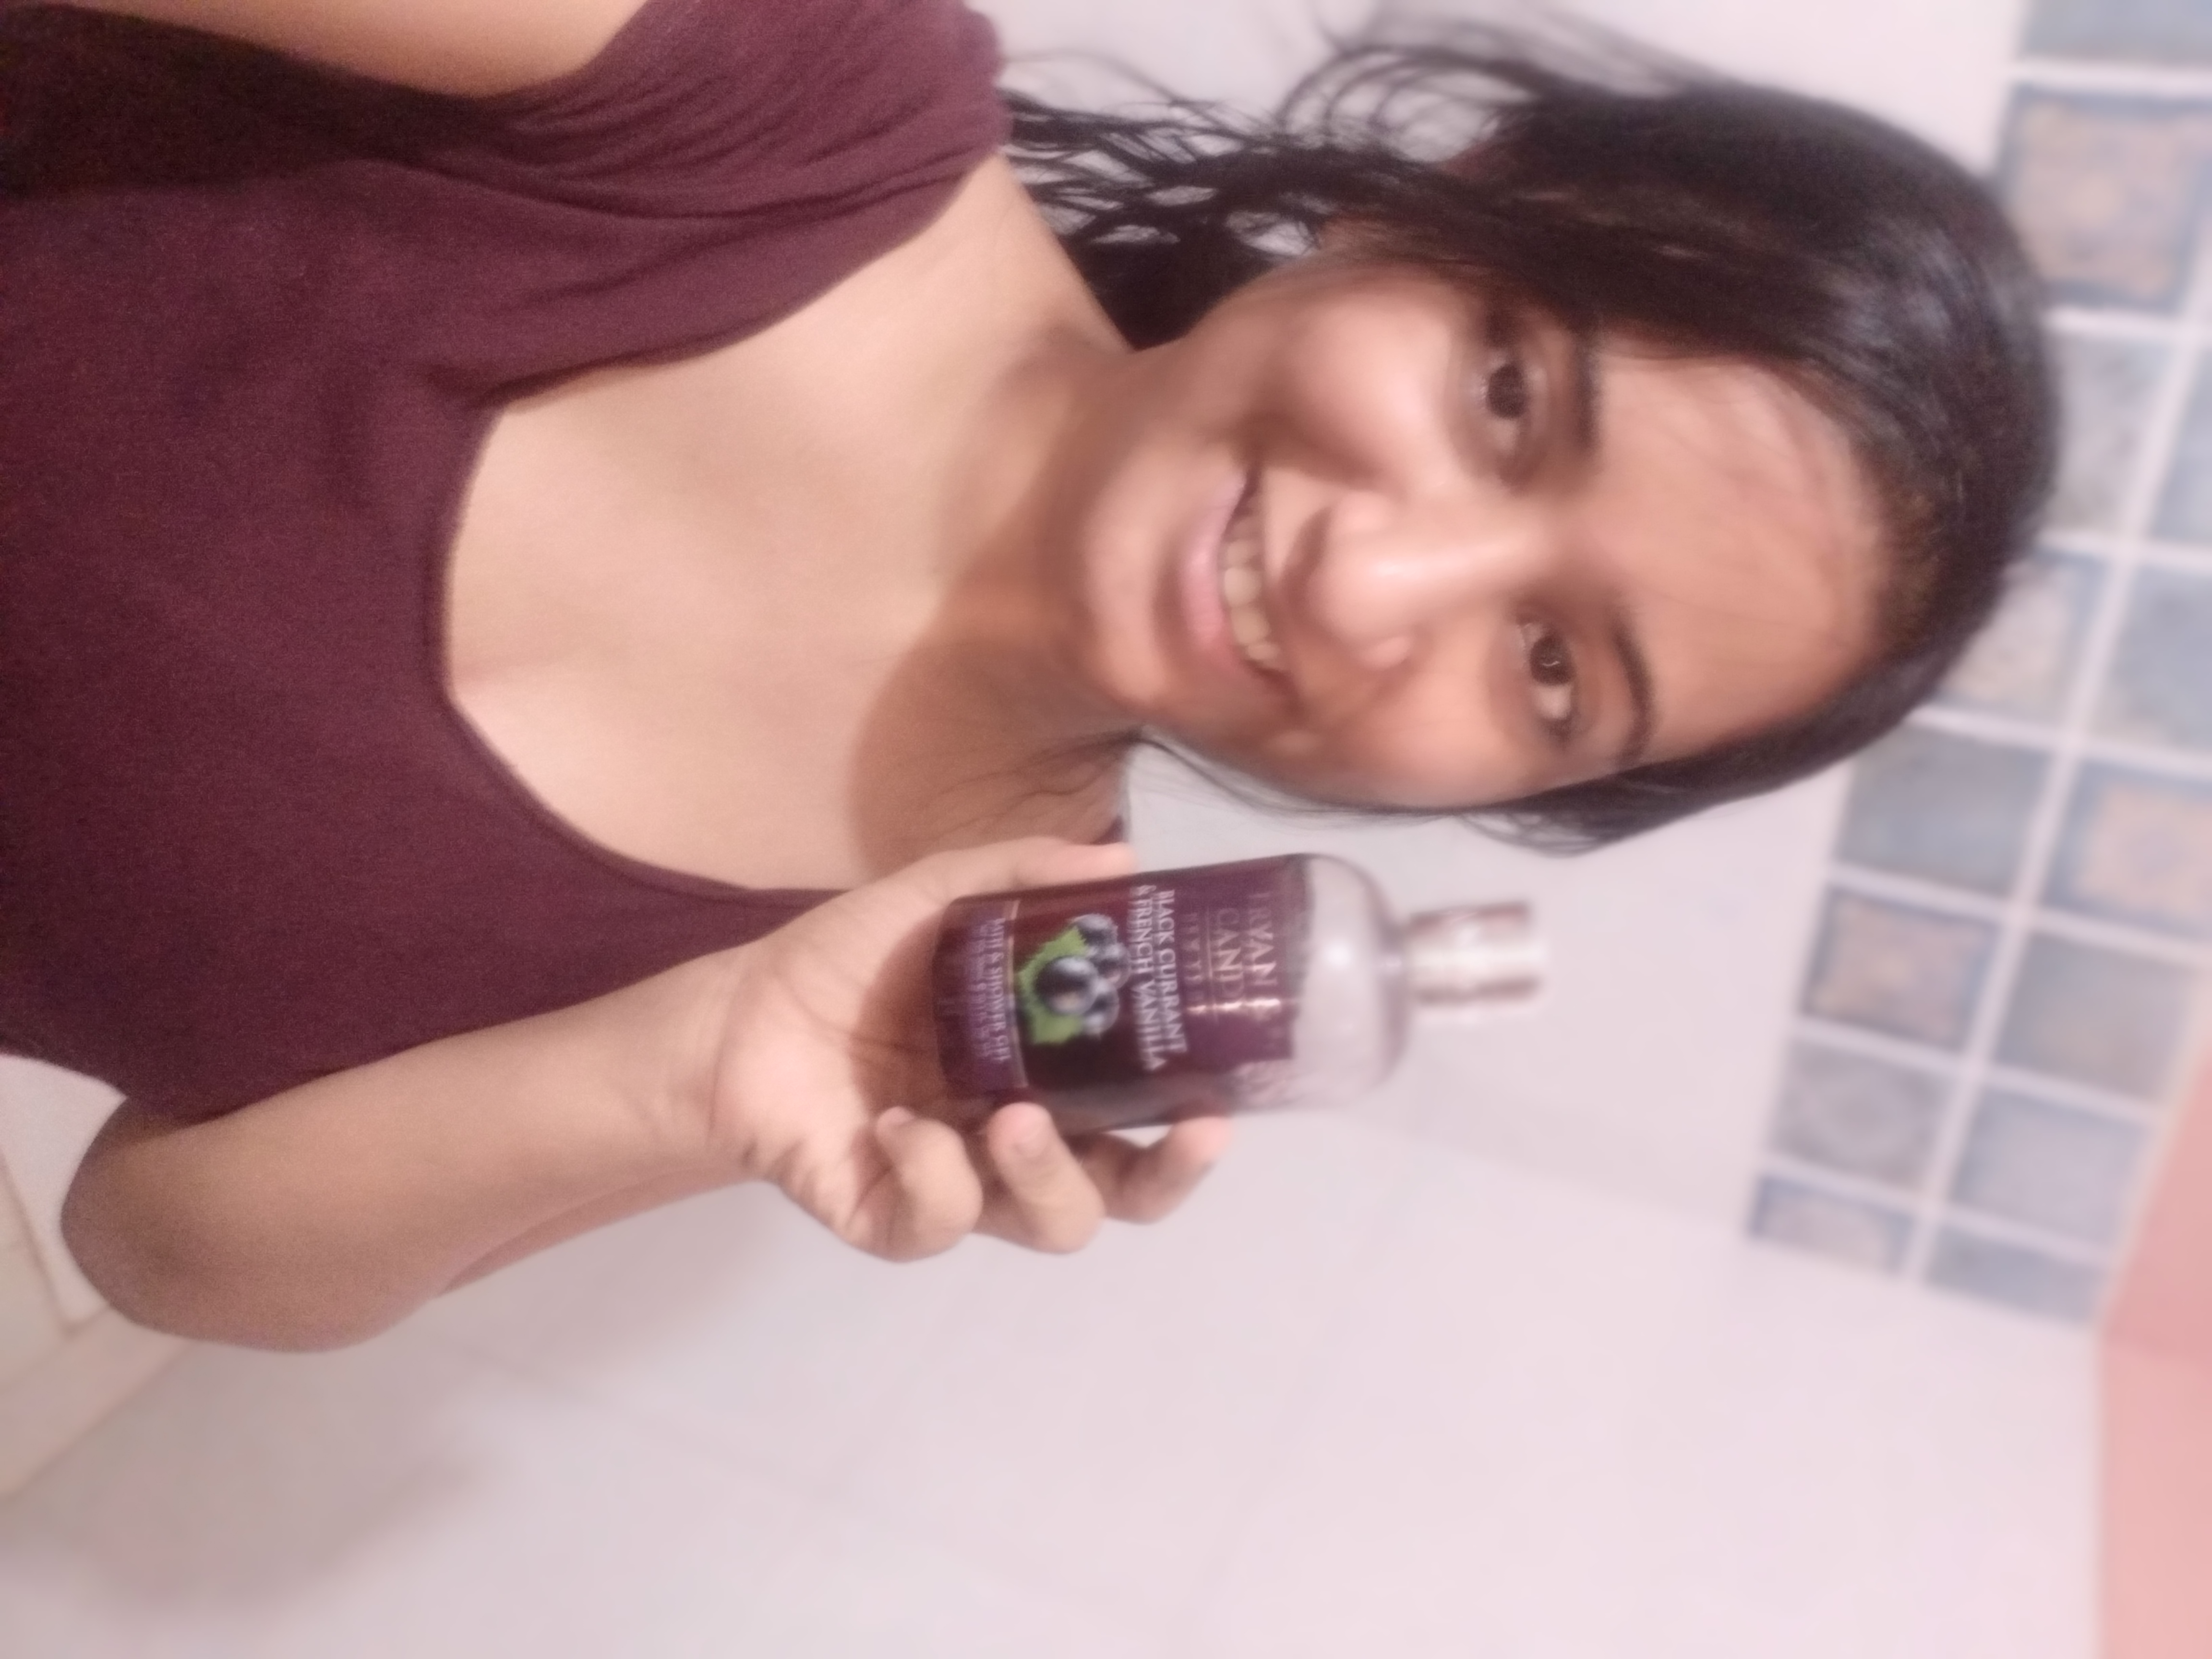 Bryan & Candy New York Black Currant and French Vanilla Shower Gel-Amazing bath experience-By luckyy-2